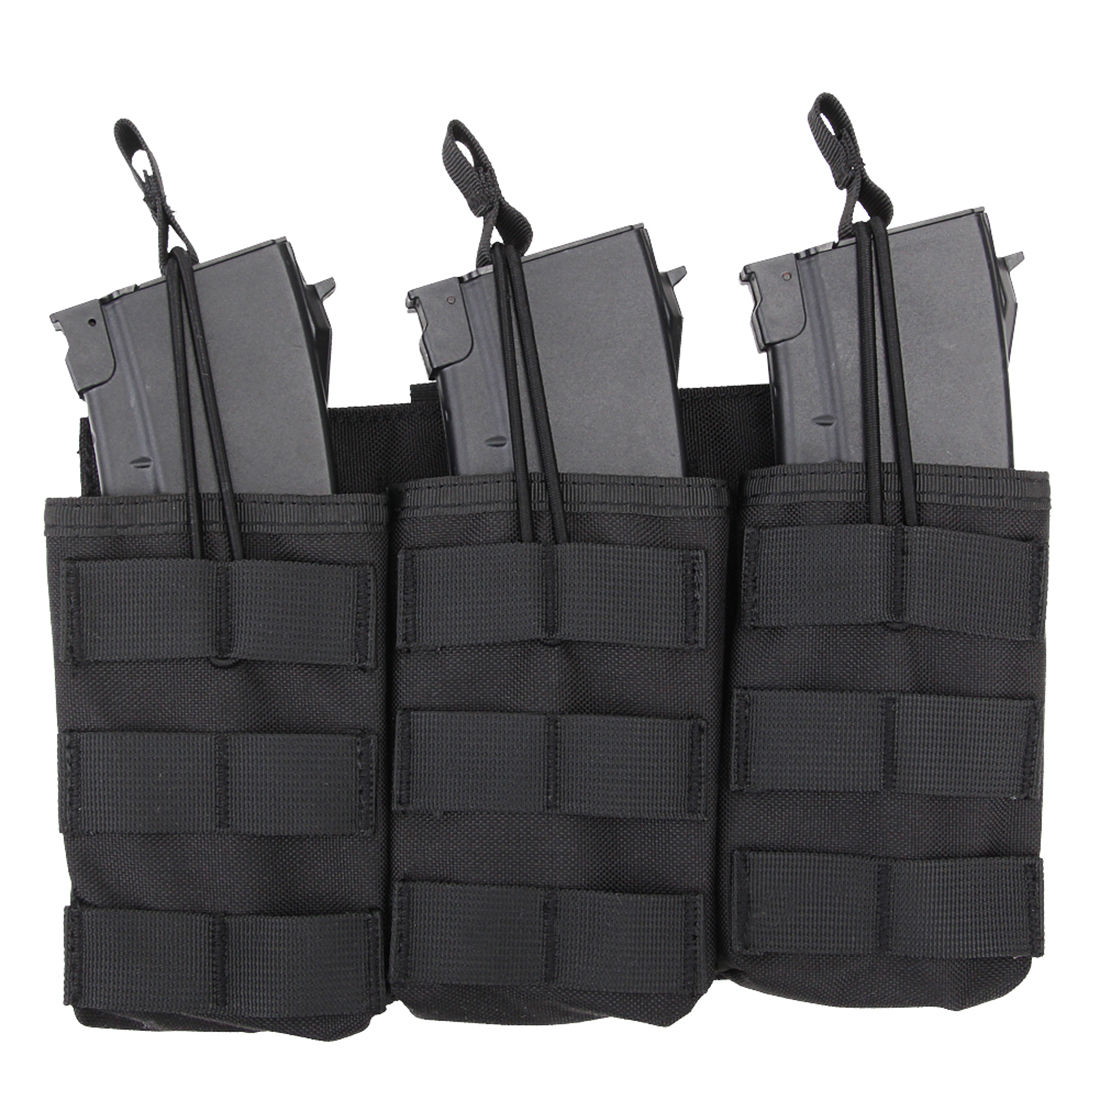 High Recommend 1 Pcs WST Triple Stacker Magazine Pouch Bag Case For G36 Mag - CP/Green/Tan/Black